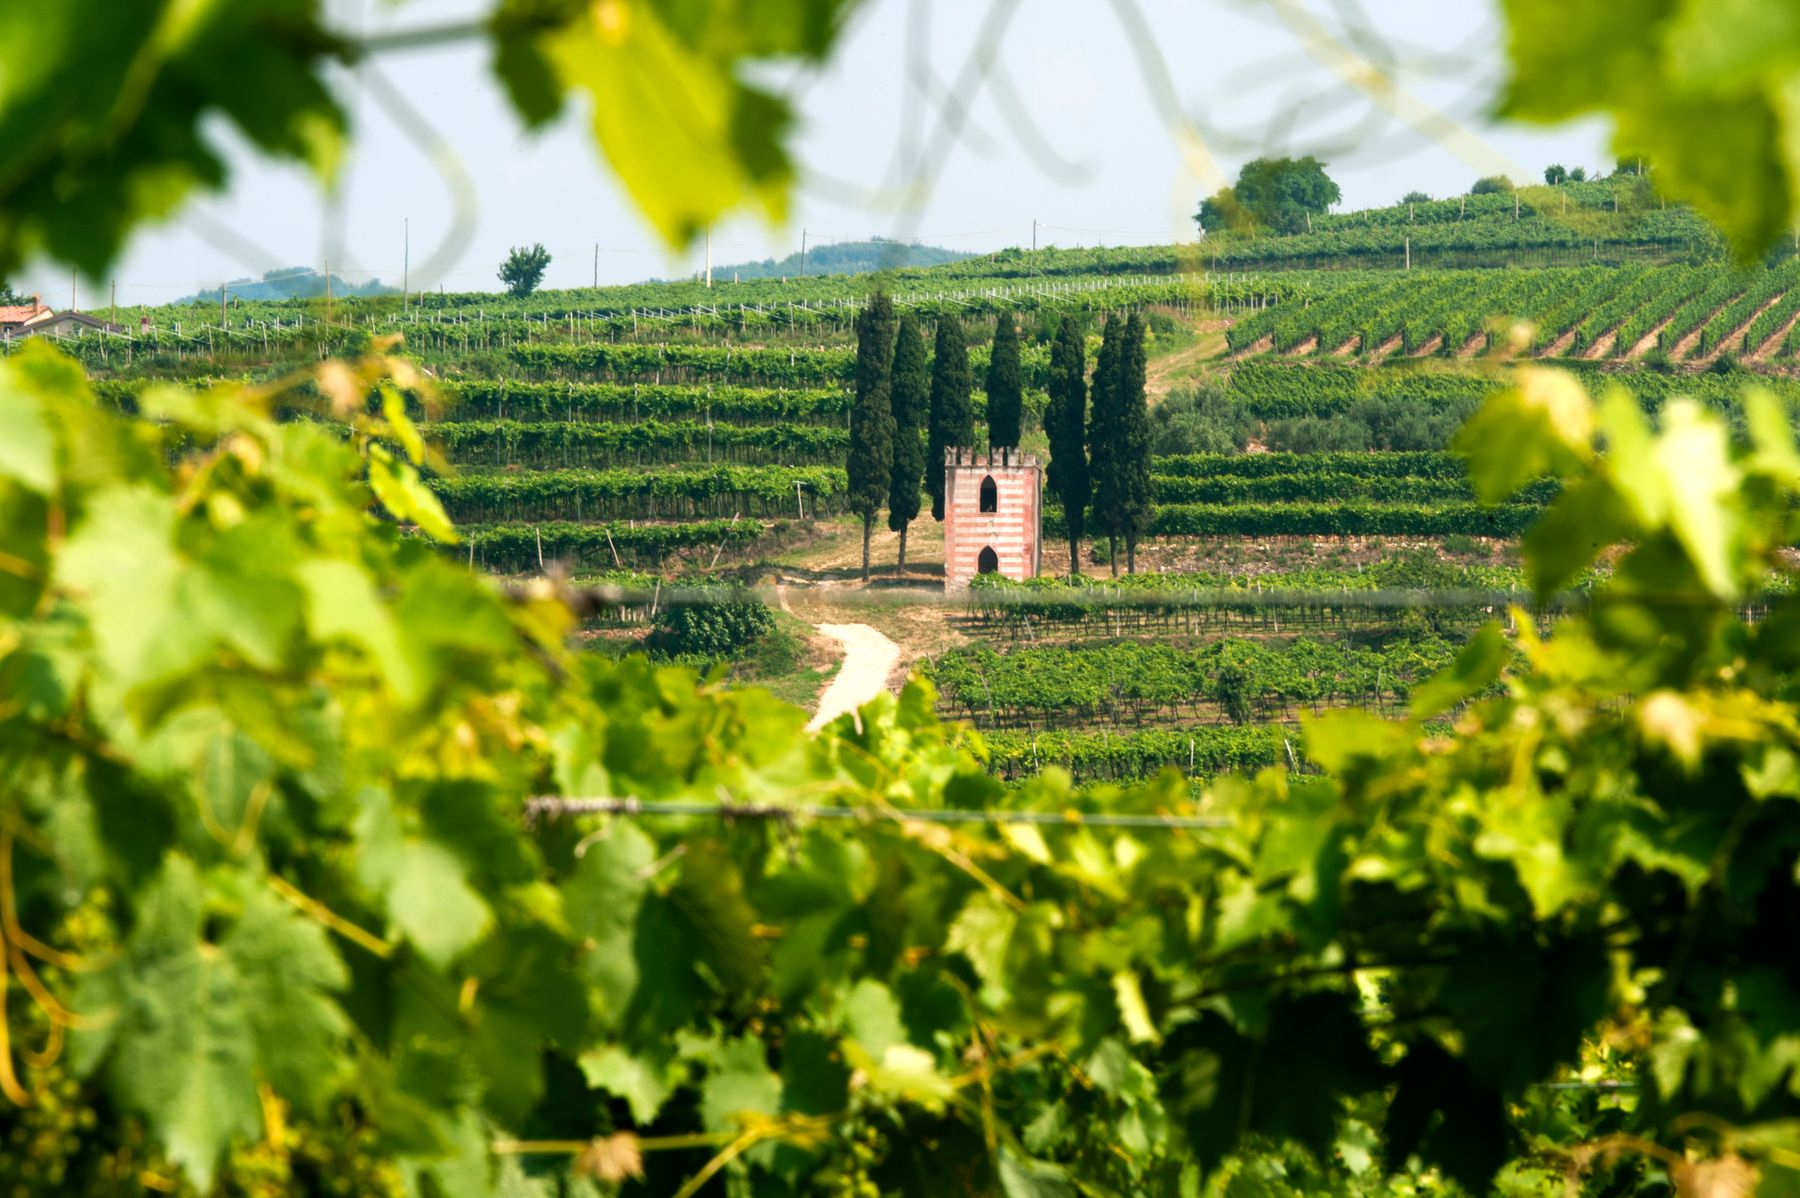 Looking through leaves into a hillside full of grapevines